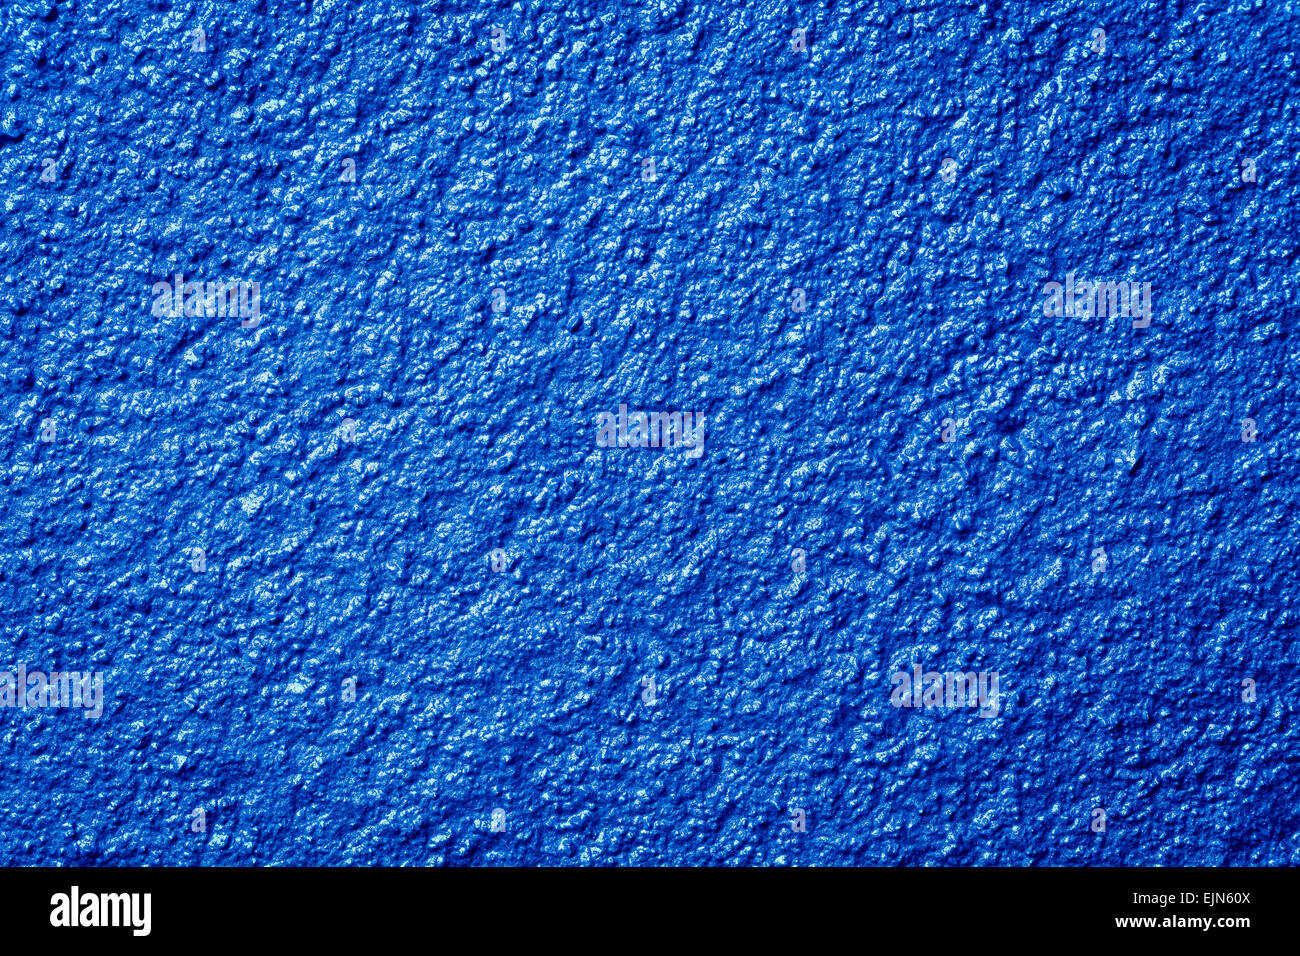 Photo of a grunge blue metallic paint textured background wall Stock